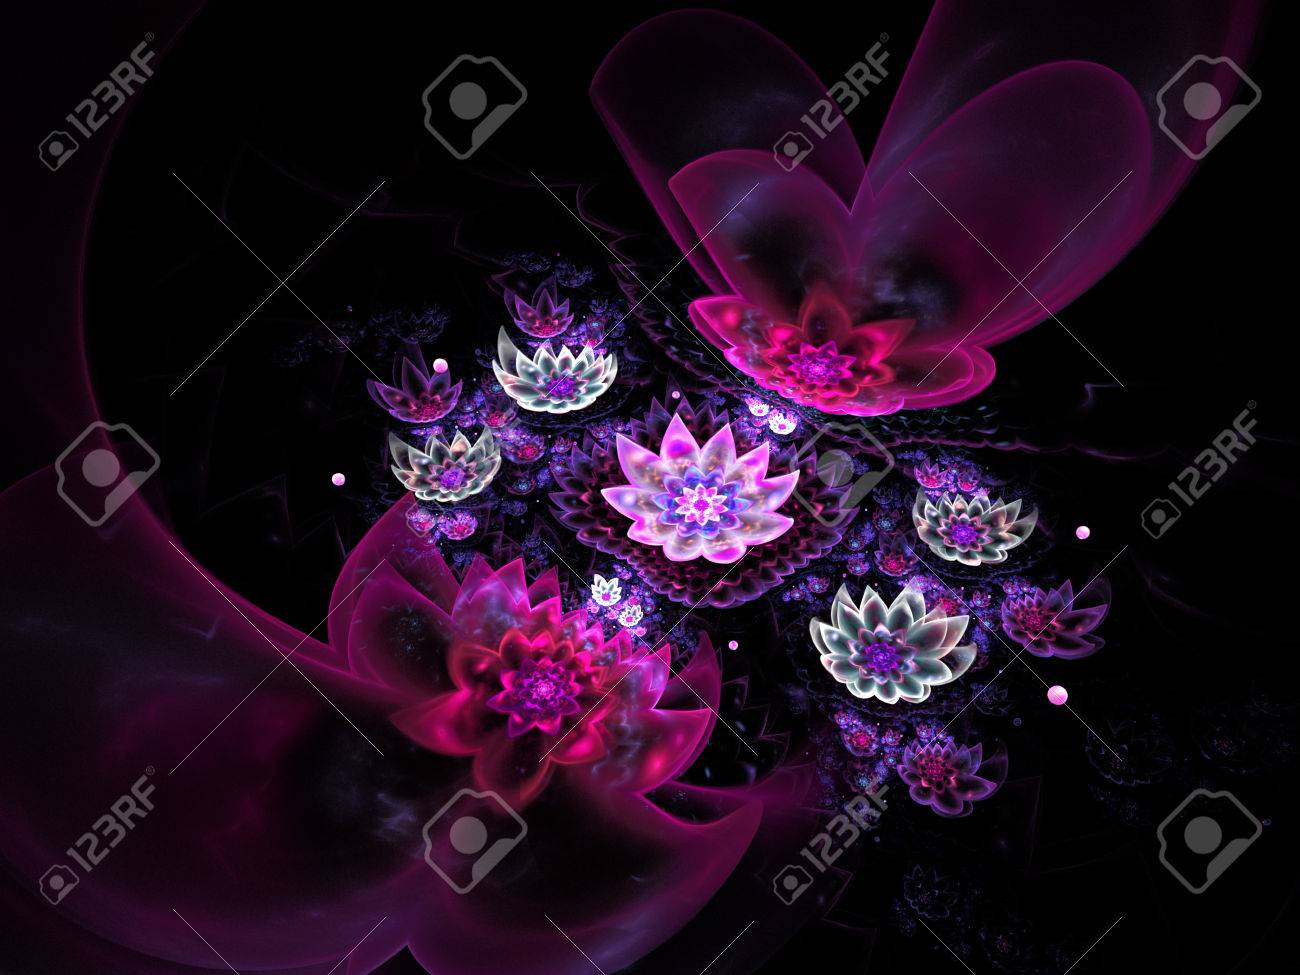 Abstract Beautiful Lotus Flowers On Black Background Fantasy